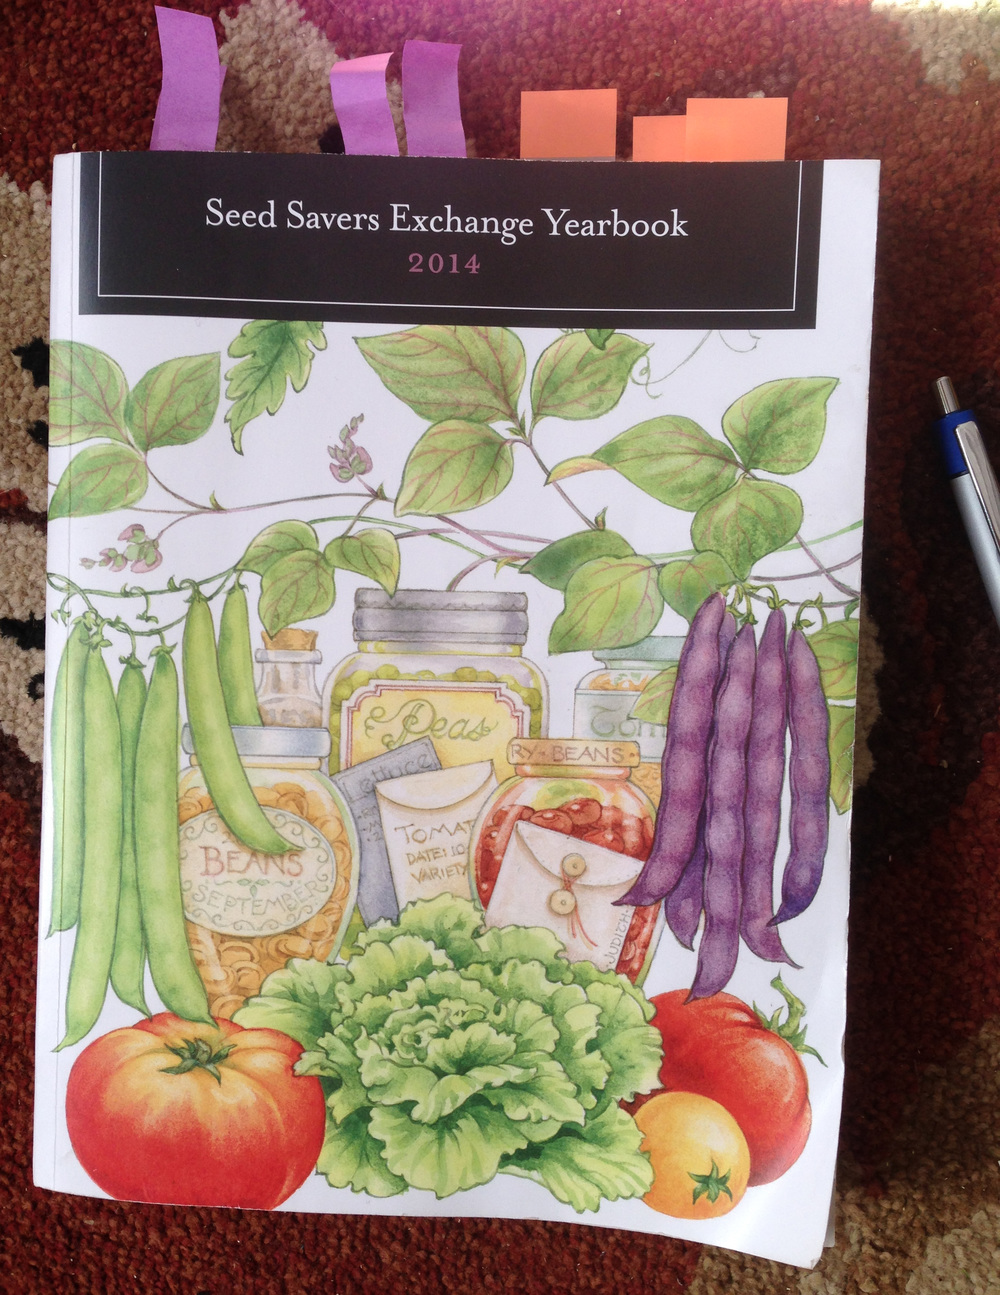 Seed Savers Exchange Yearbook.jpg